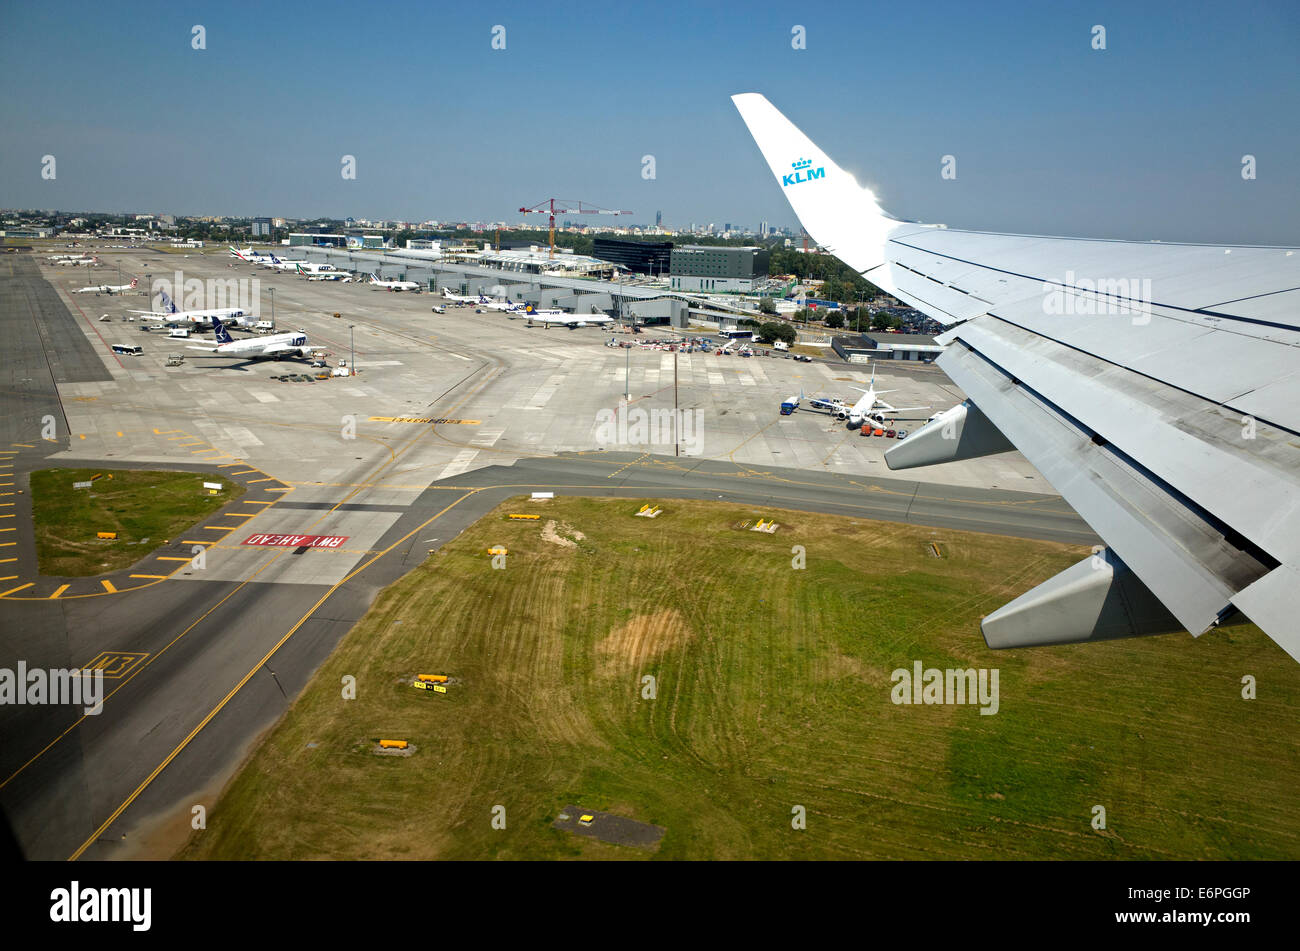 View of the of the Frederic Chopin airport from an airborne KLM airplane. Warsaw Poland - Stock Image